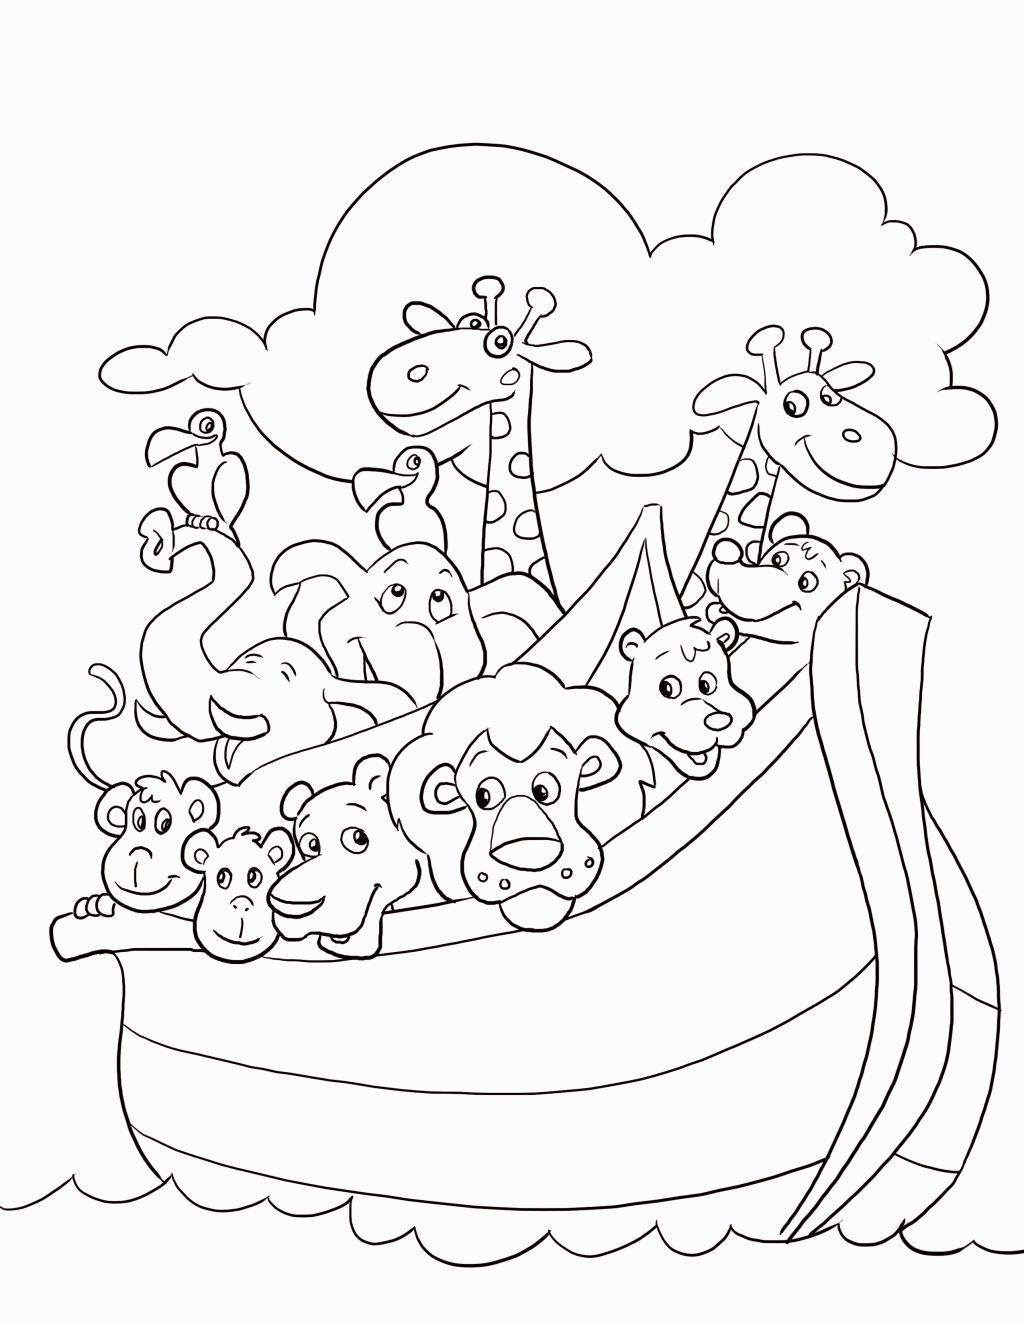 free childrens coloring pages christian - photo#10